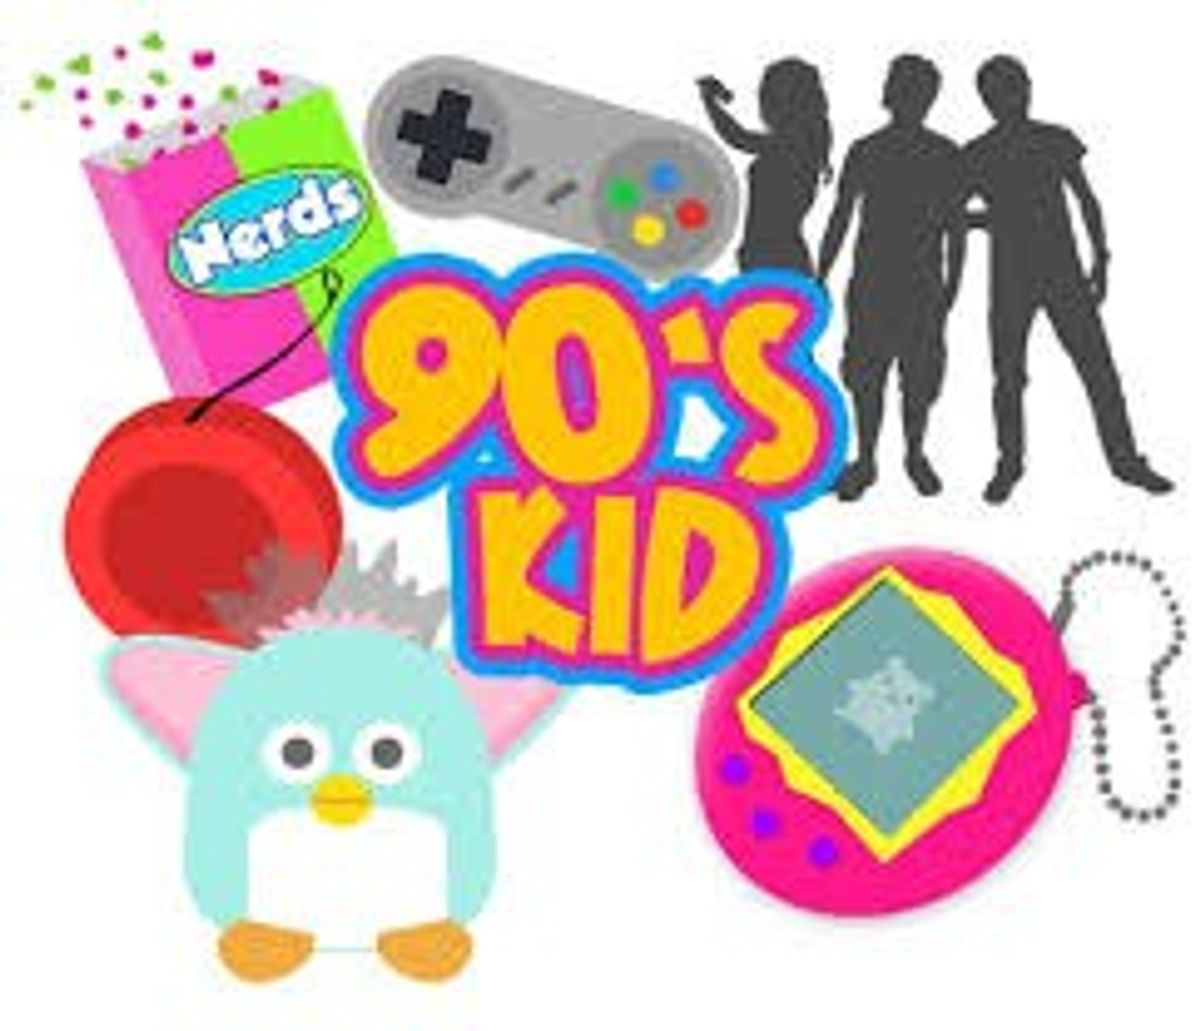 Why Are '90s Kids So Obsessed With Nostalgia?